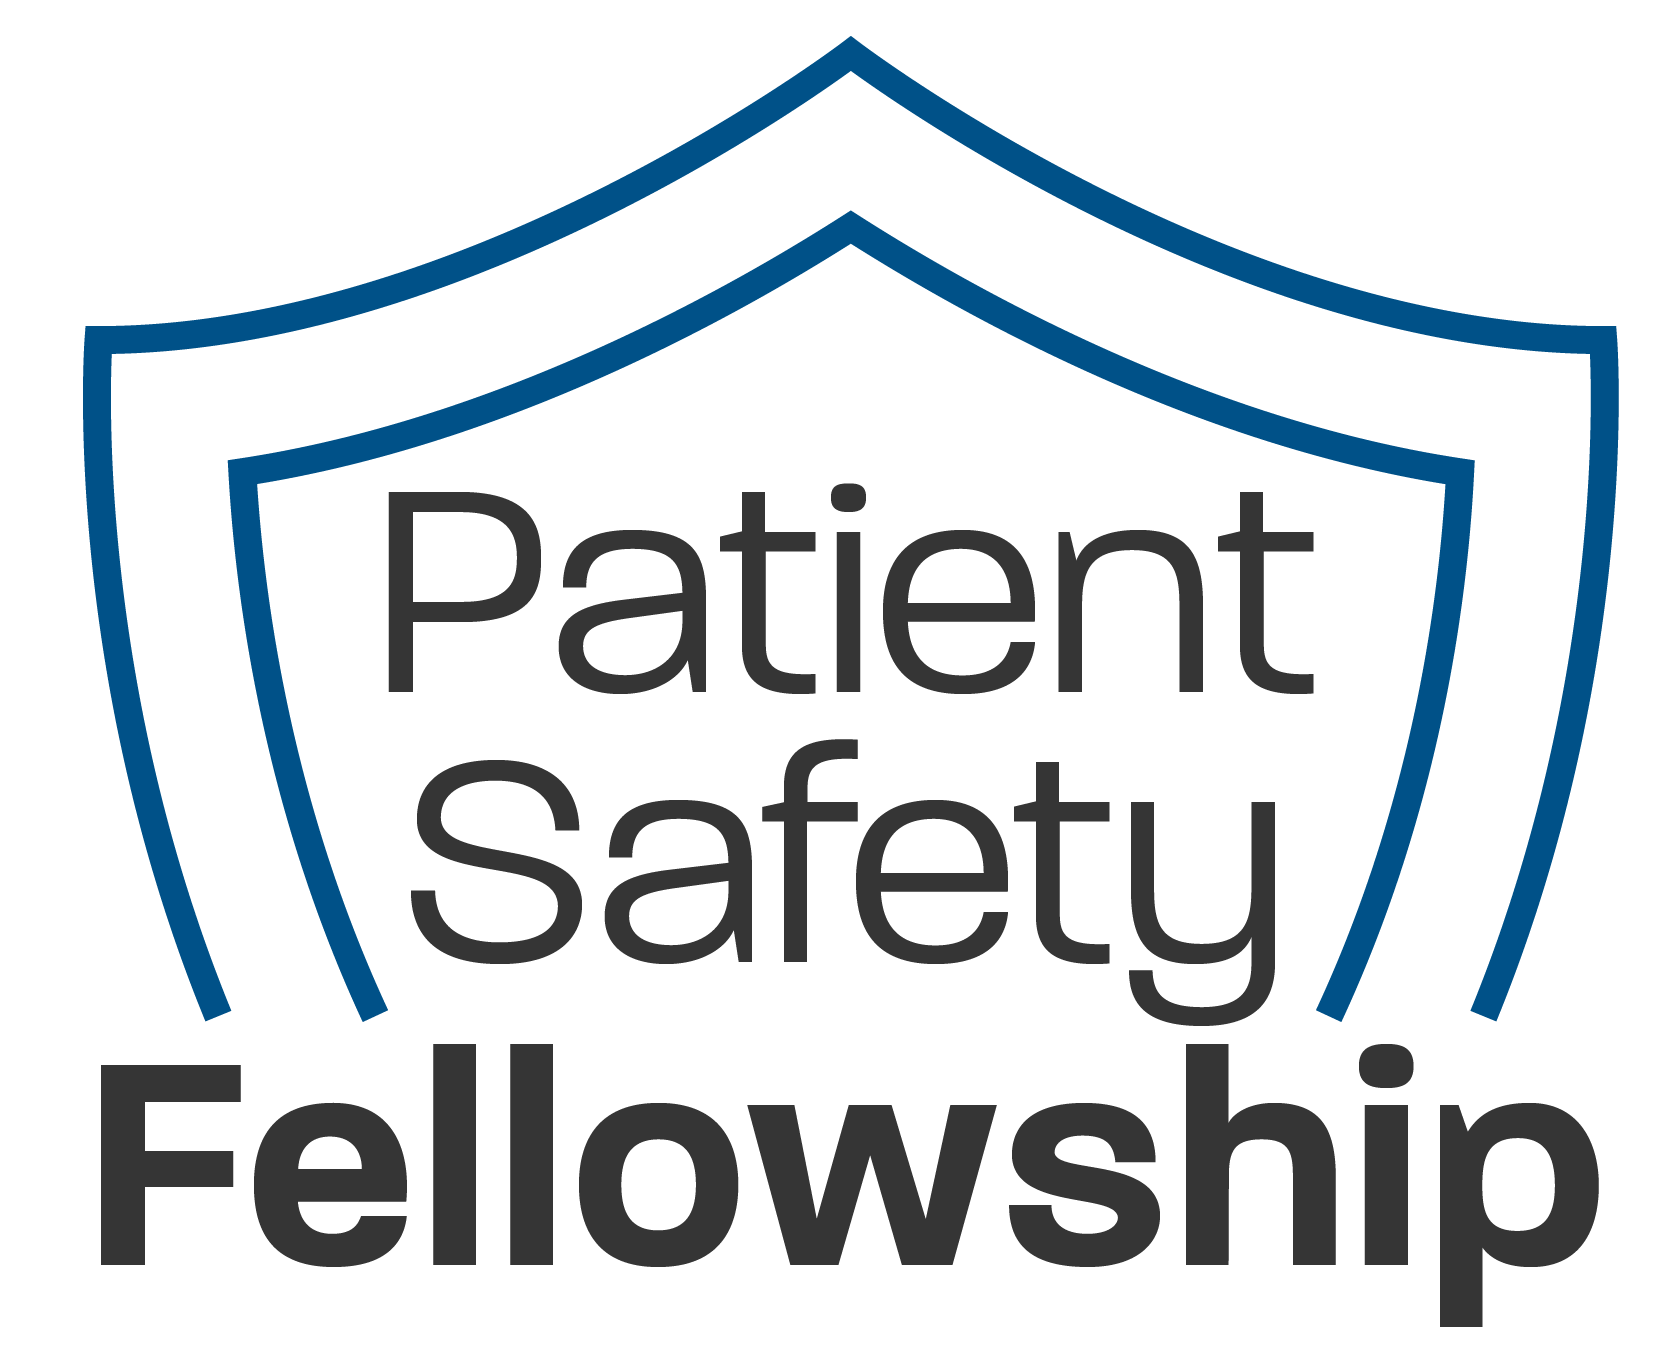 Patient Safety Fellowship